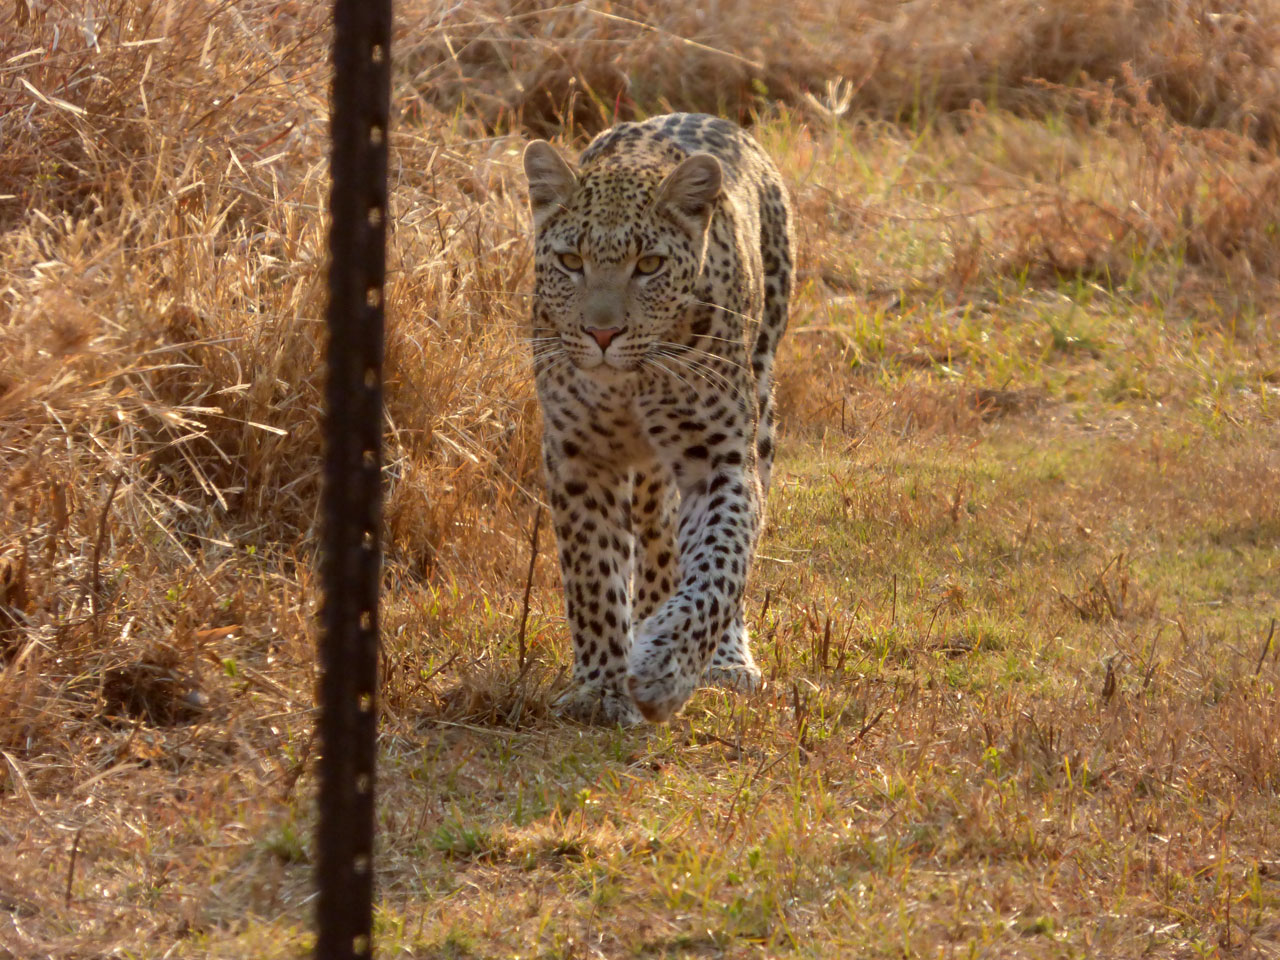 Leopard at Sanctuary Makanyane Lodge, South Africa